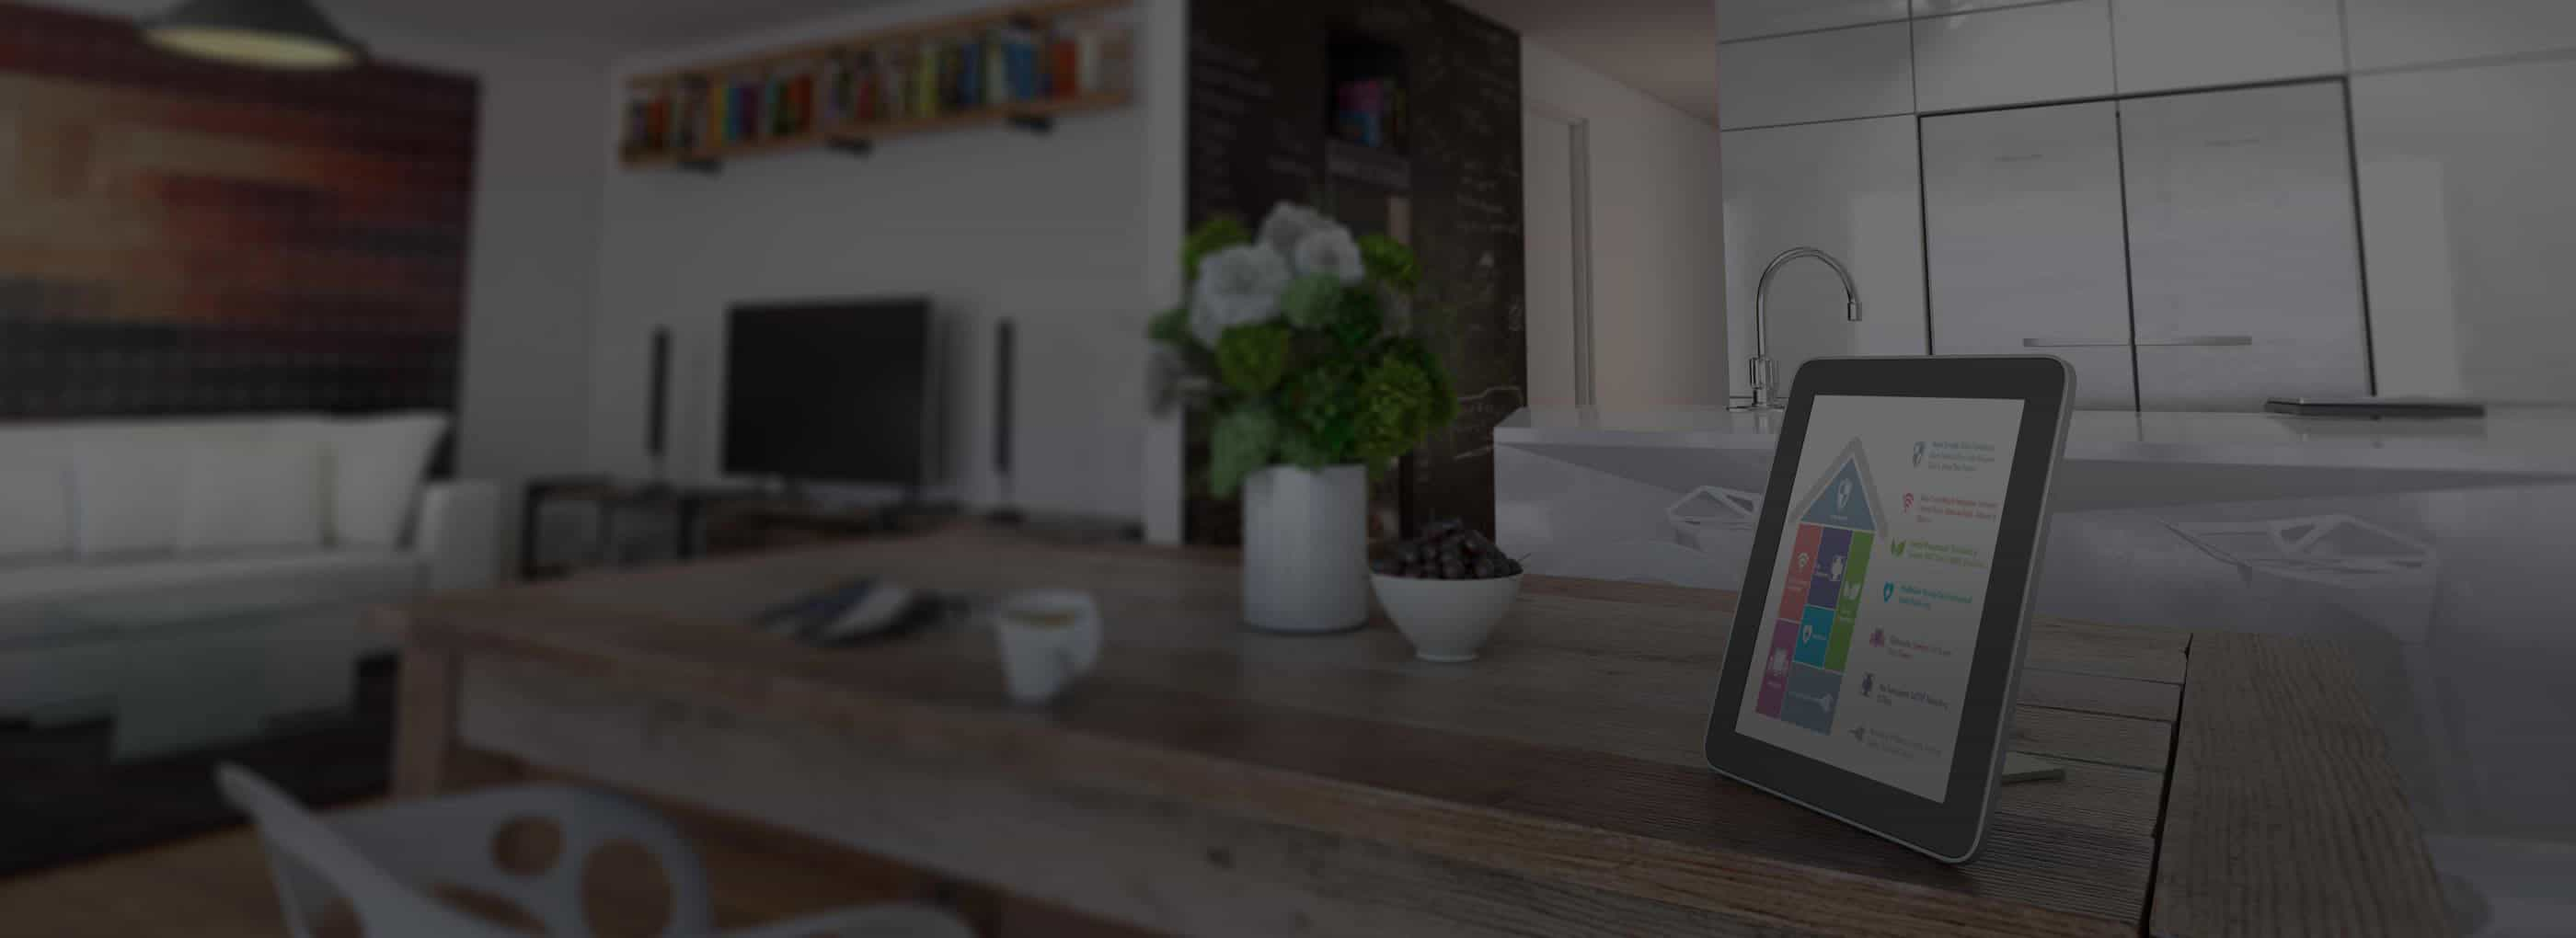 Best Self Monitored Home Security System of 2019 | Non